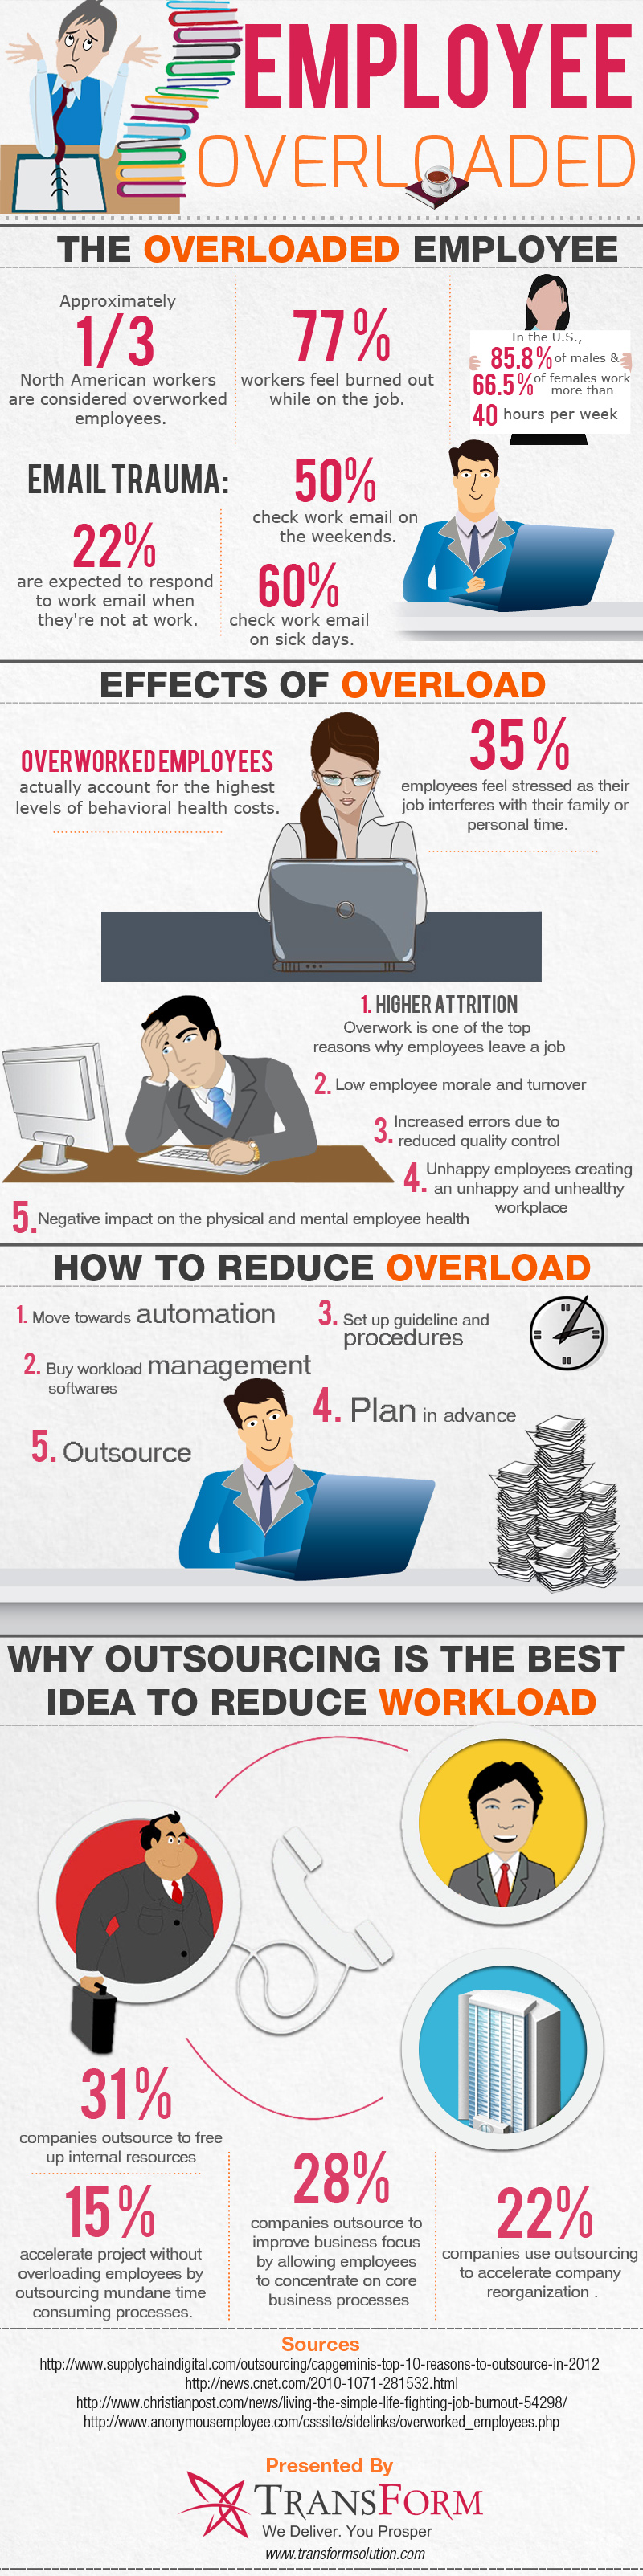 Employee-Overloaded-Infographic-by-TransForm-Solution